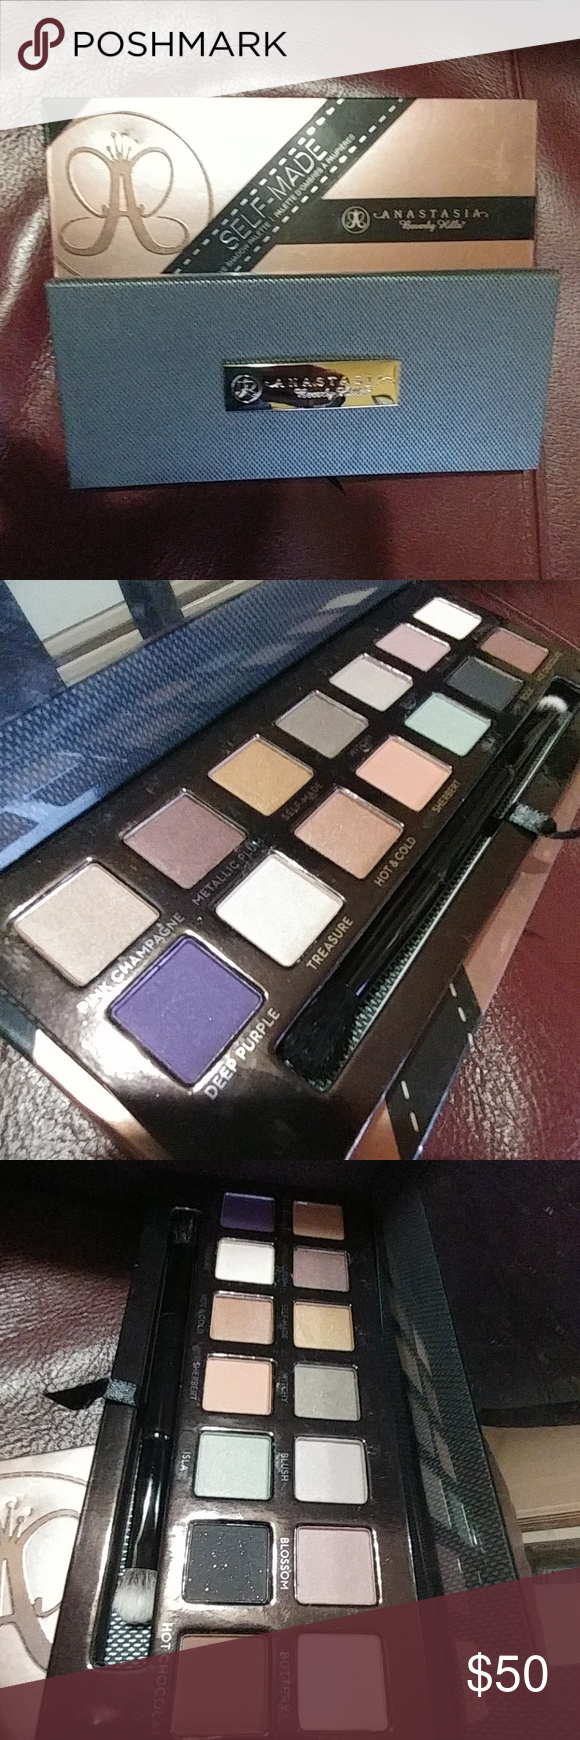 RARE** Anastasia Beverly Hills SELF MADE Palette Boutique